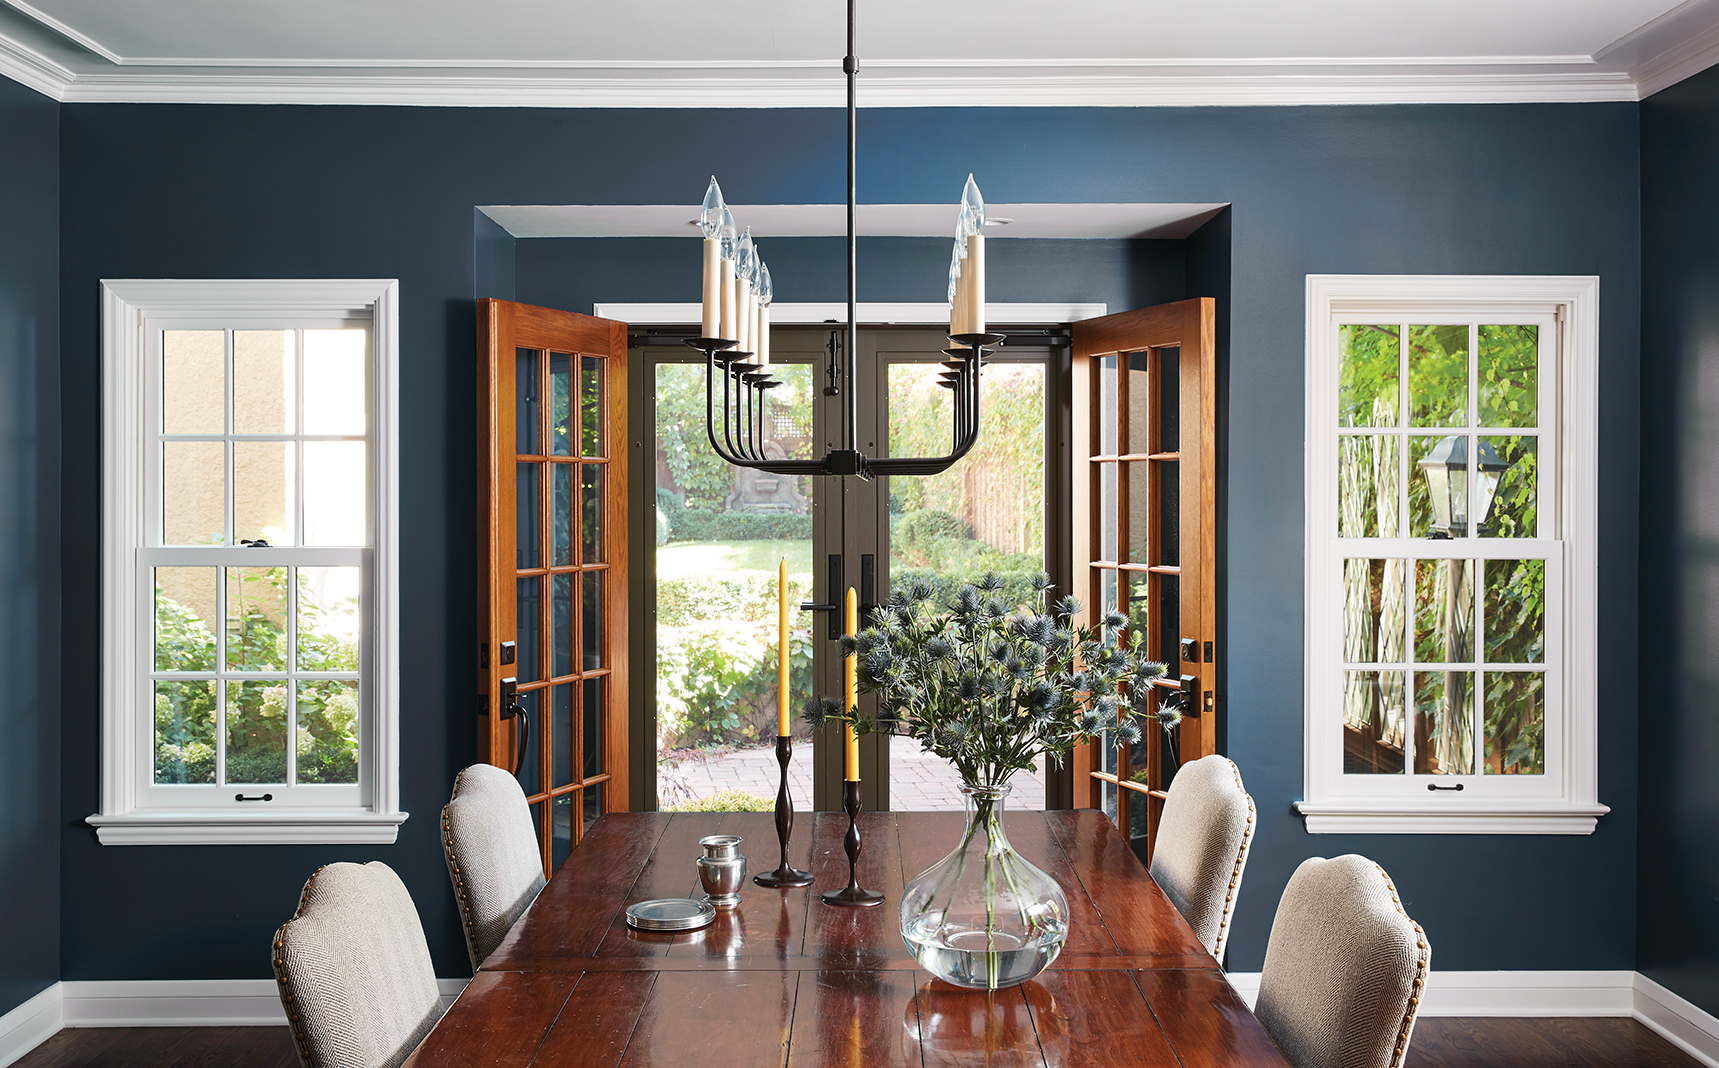 The dining room of the Chisel Architecture-remodeled Tudor home.